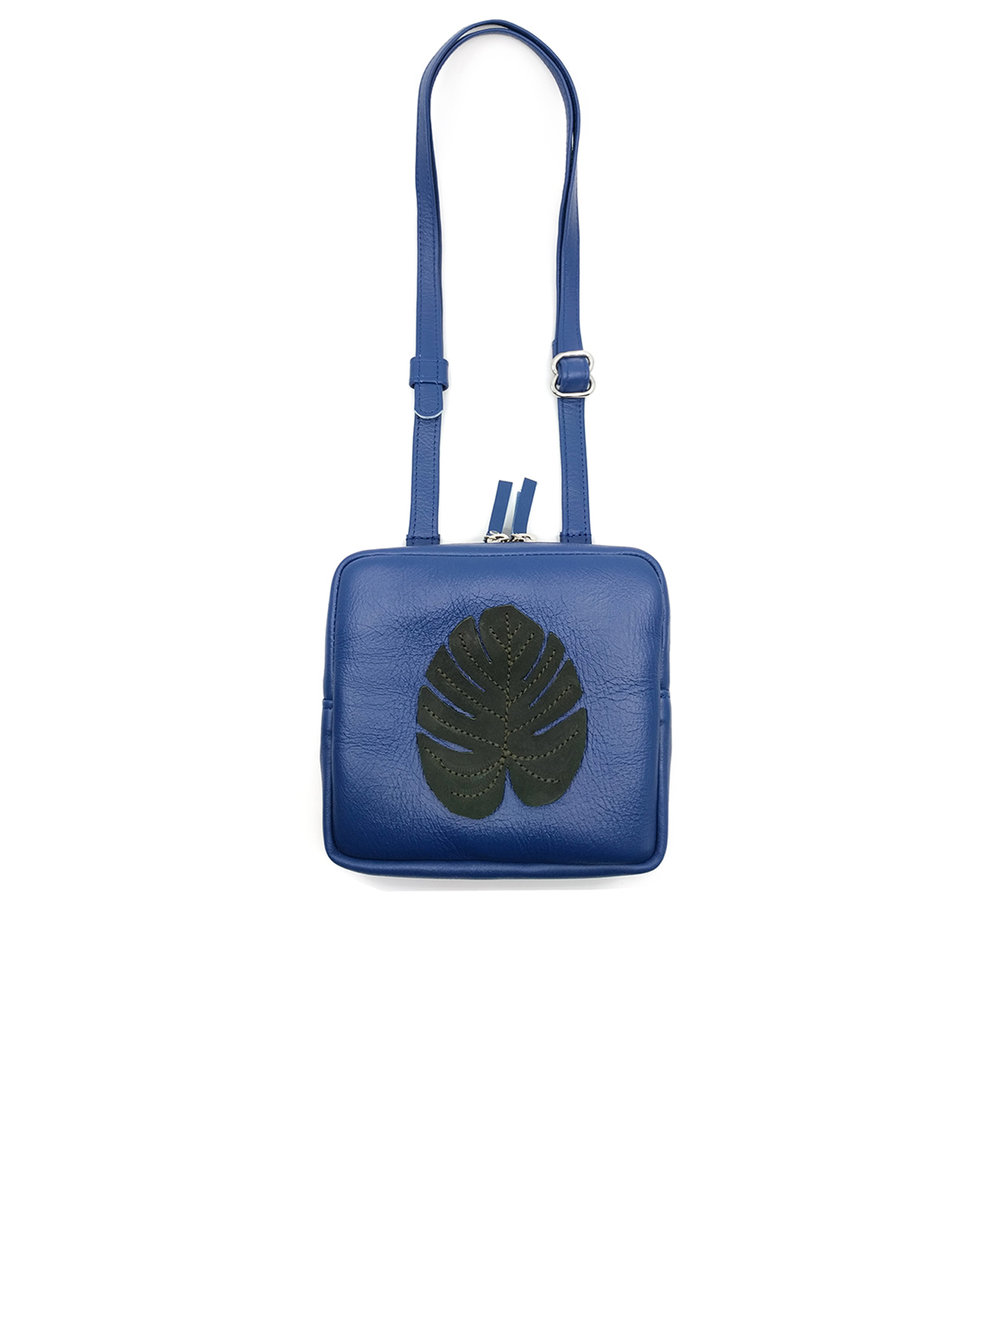 Leaf appliquéMini handbag - more colors available150.00$